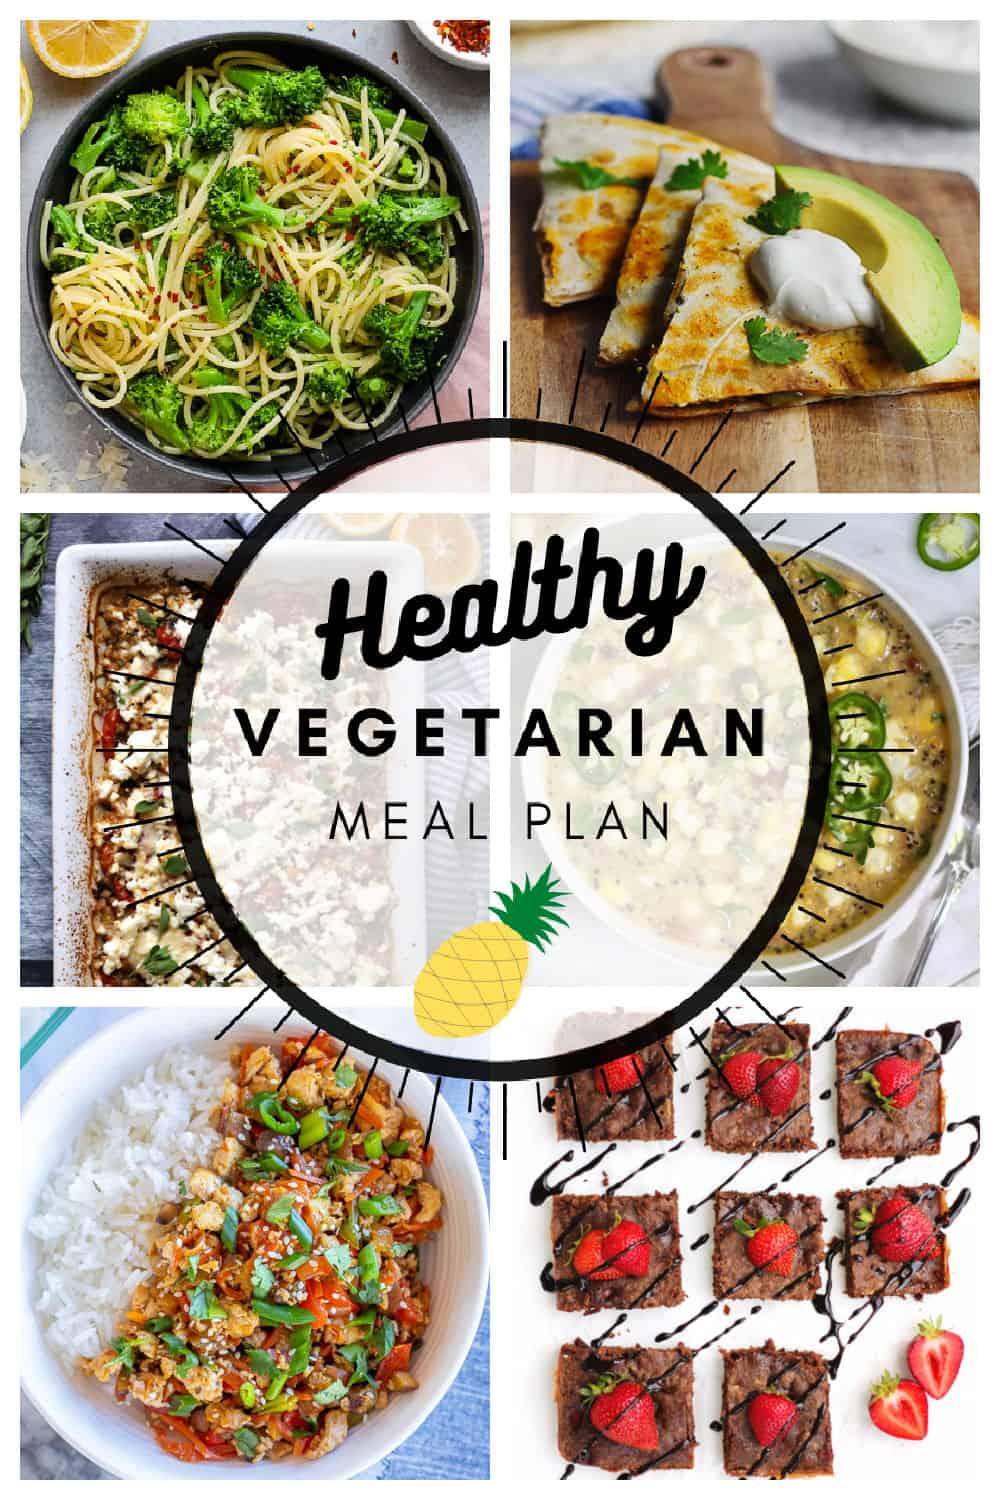 Healthy vegetarian meal plan week 15/52 collage with text